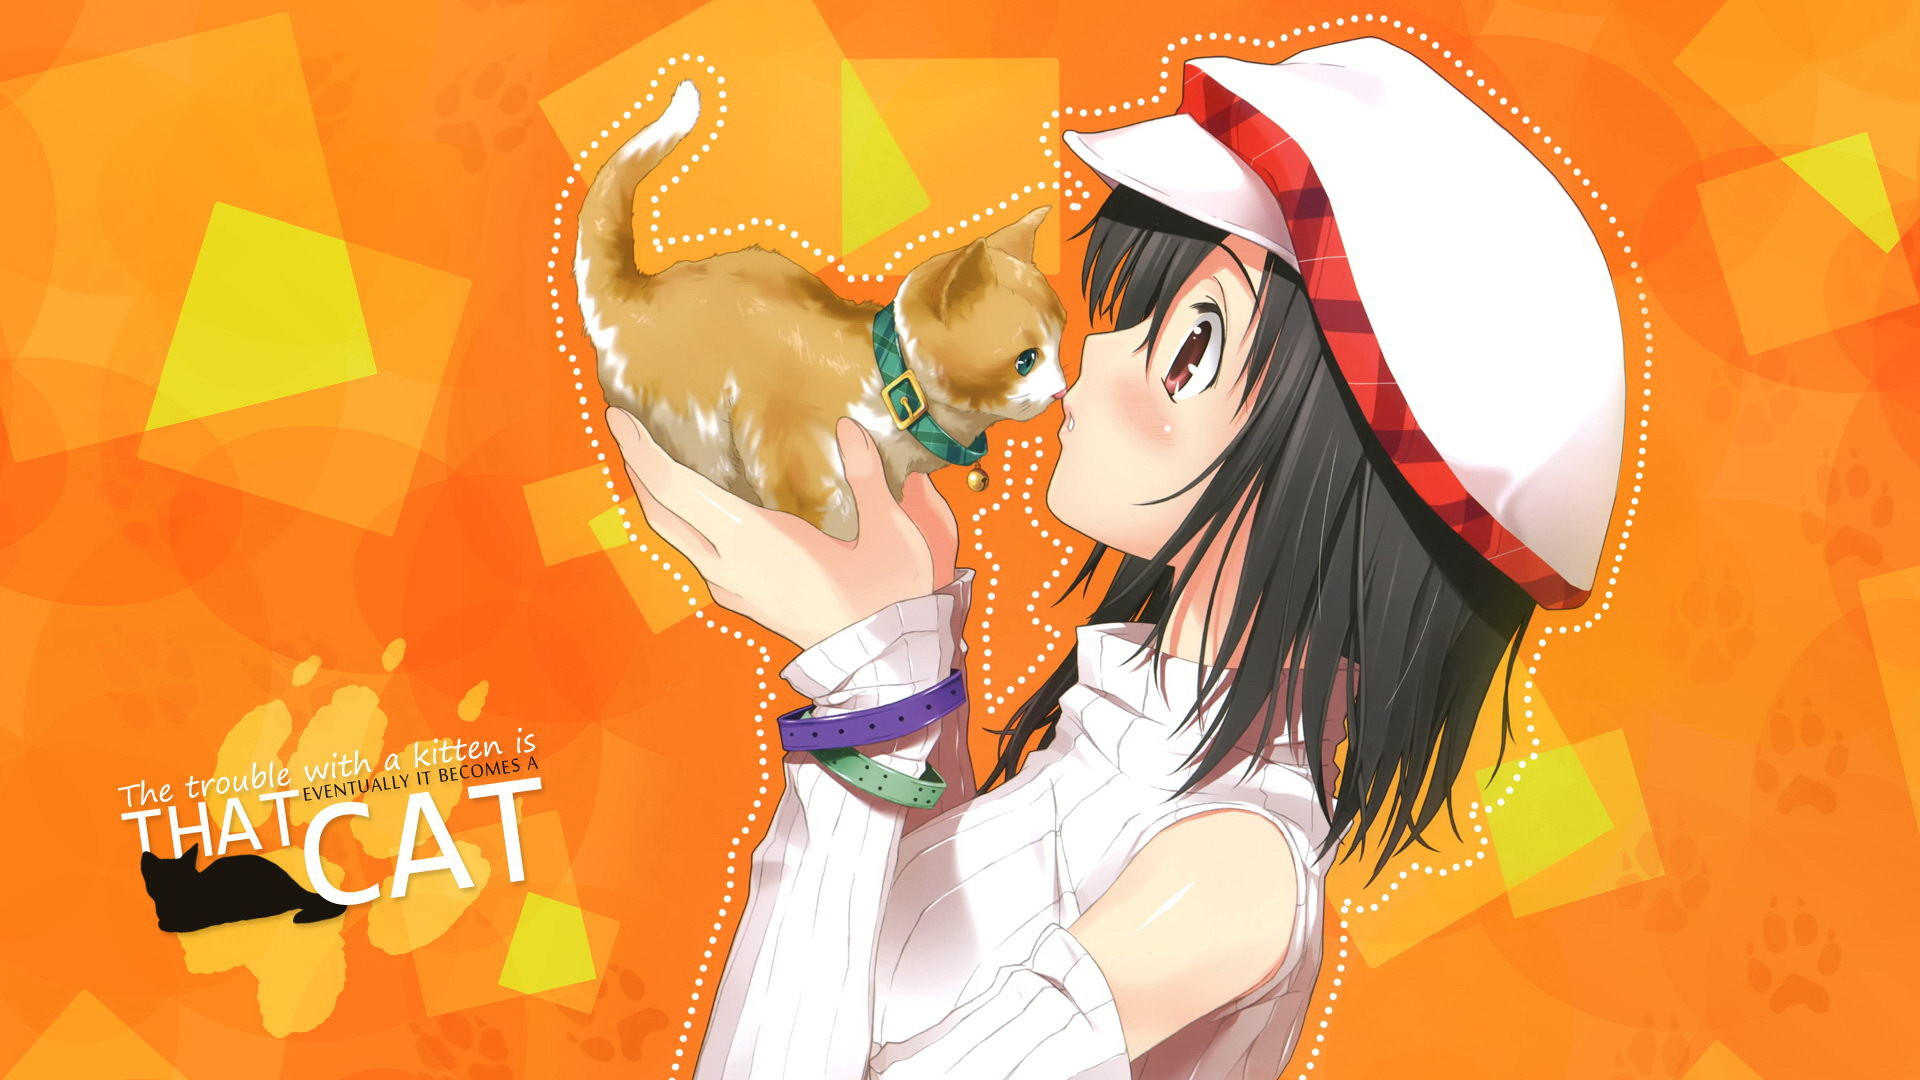 1920x1080 Cute Anime Cat People Wallpaper Background